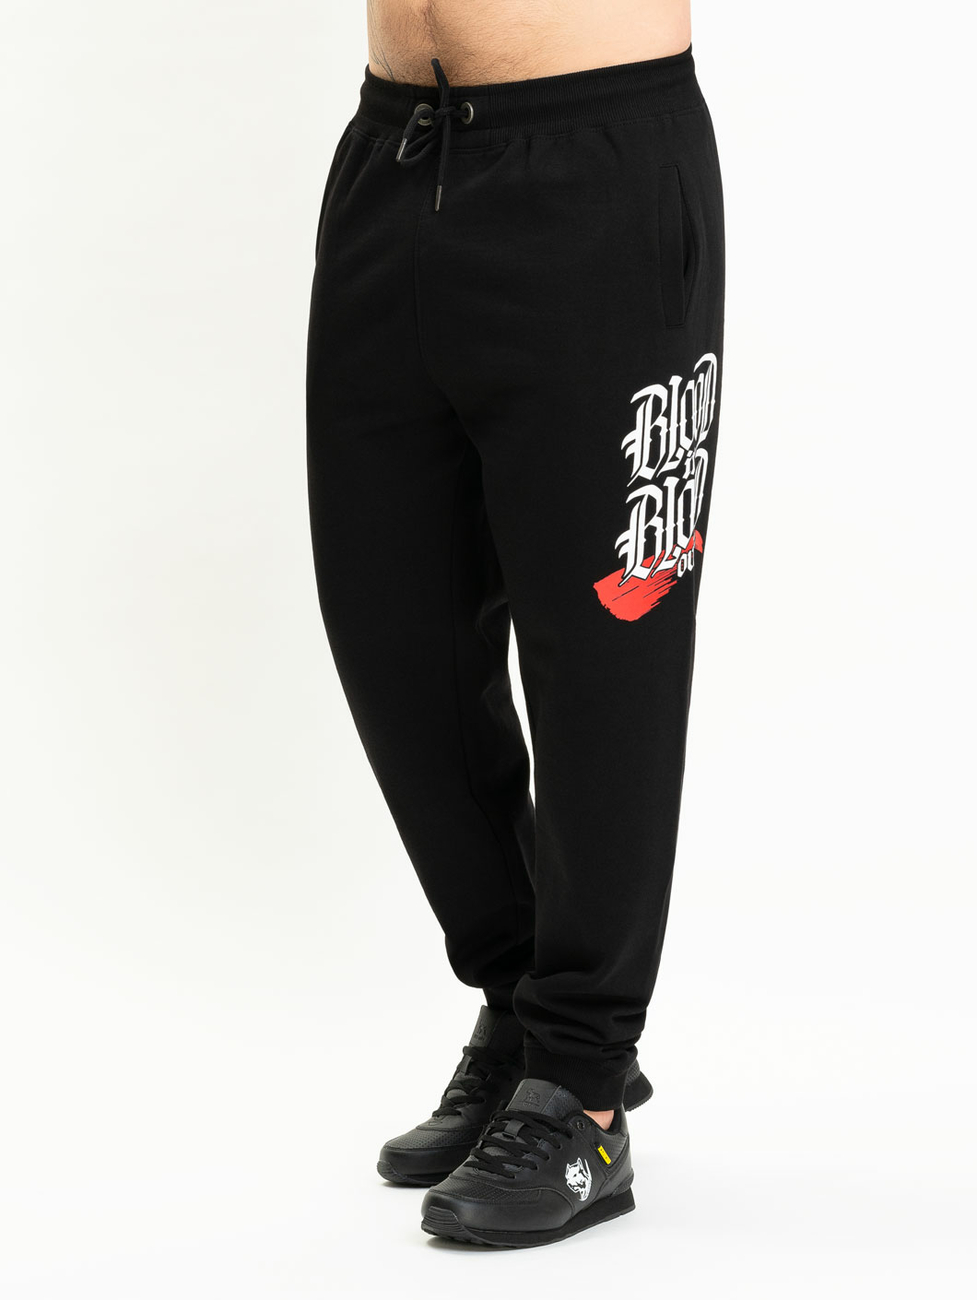 Blood In Blood Out Tranjeros Sweatpants 3XL